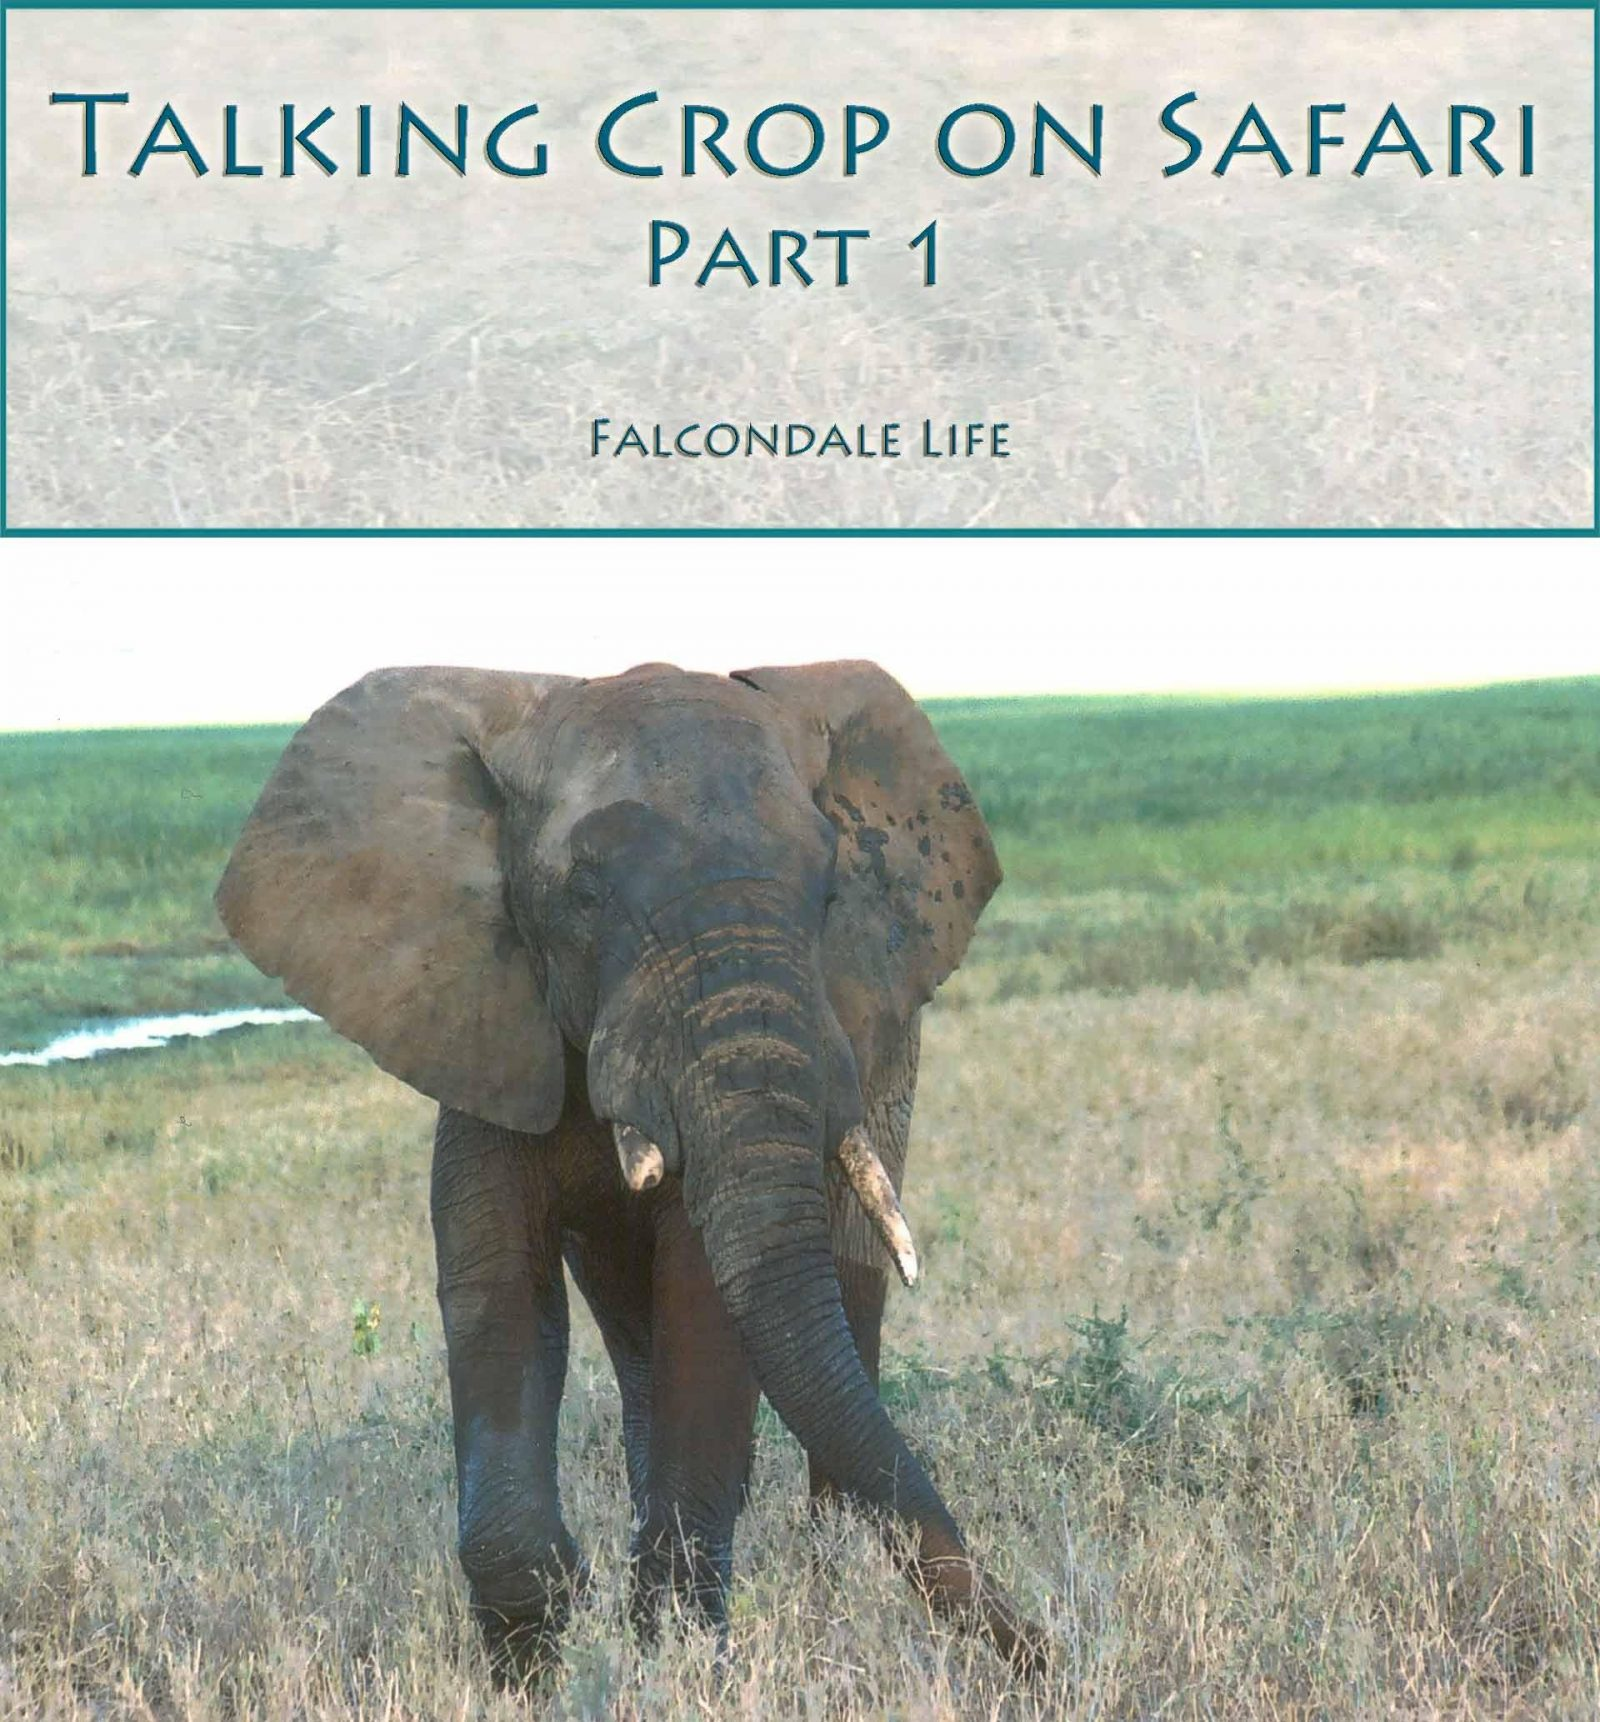 Don't talk so much crop on Safari on Falcondale Life blog. What lenses to take on safari. Photography tips.